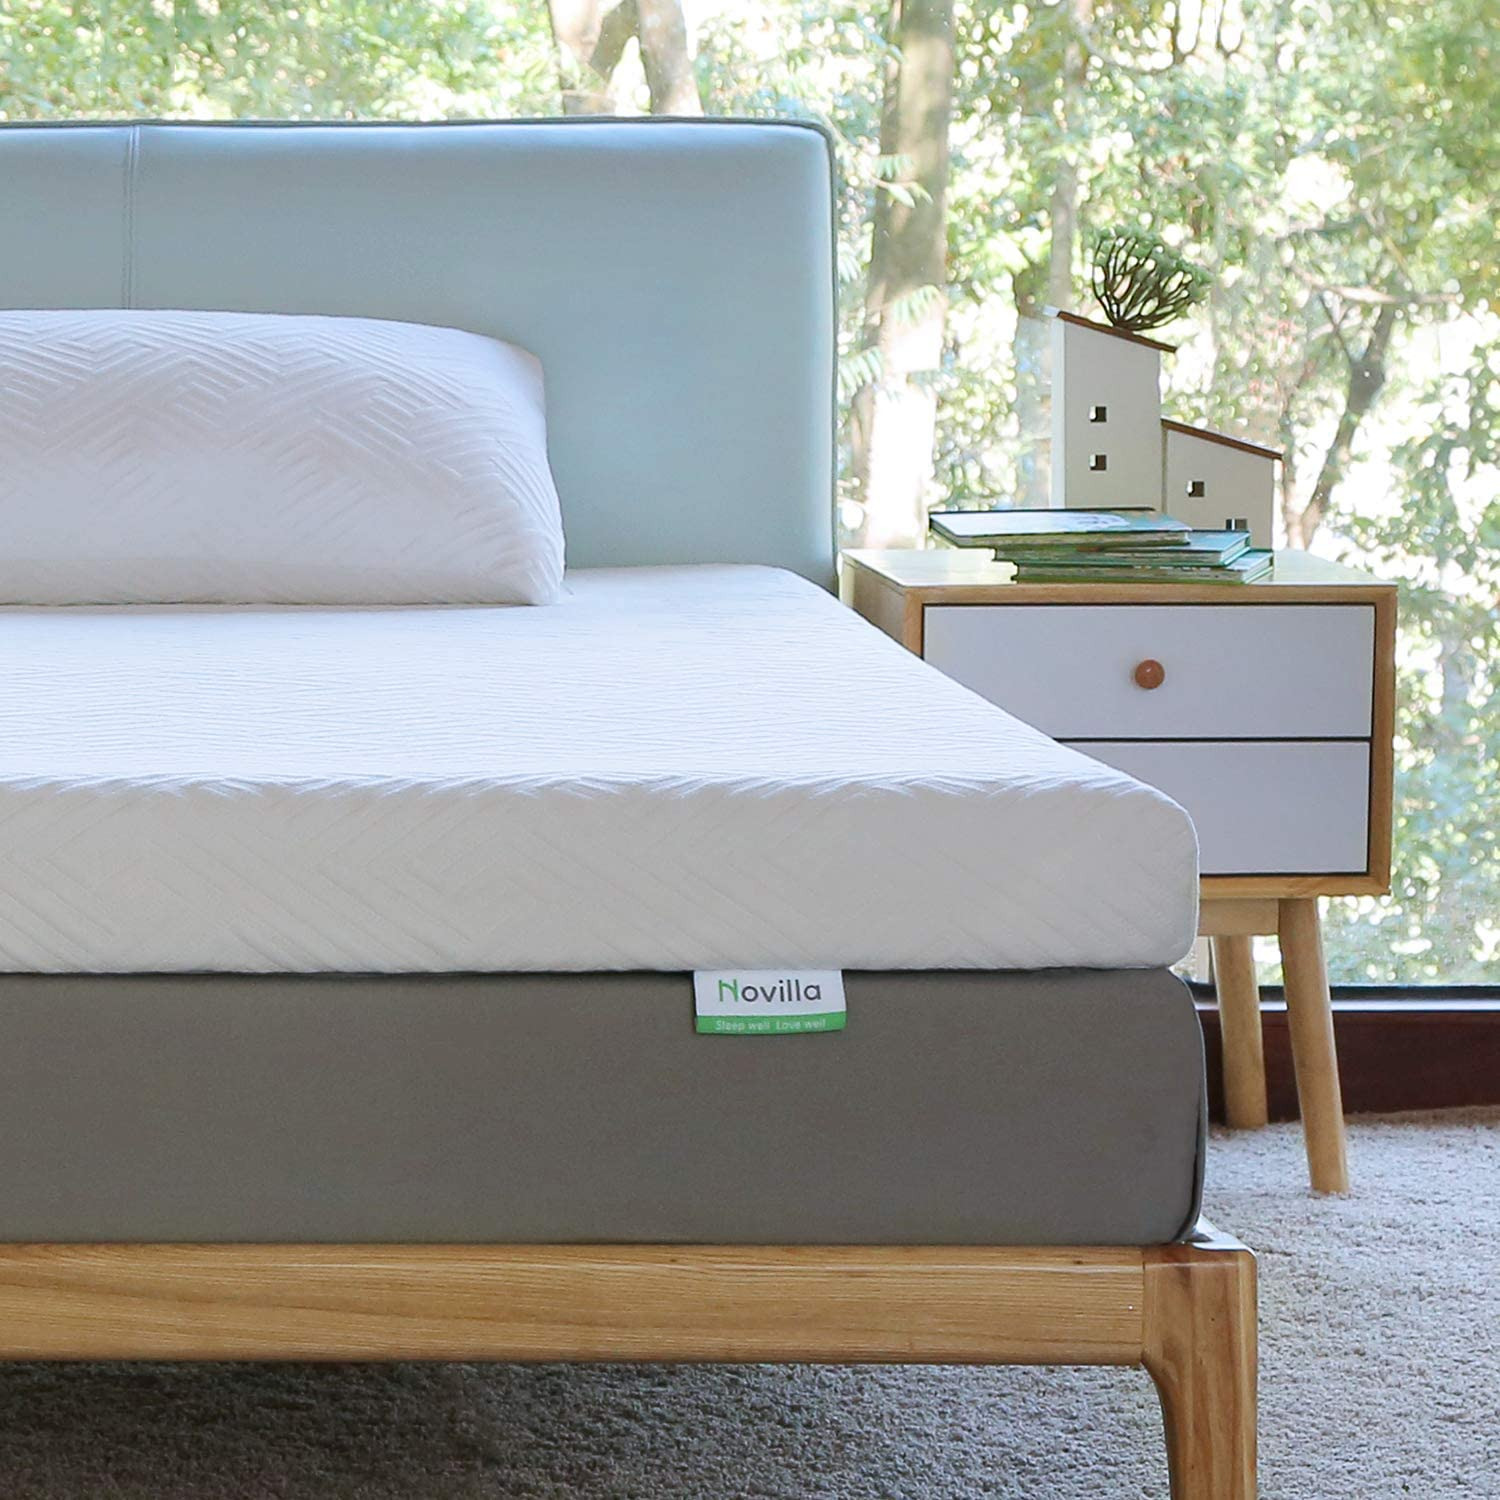 Novilla Mattress Topper Twin, 3 Inch Dual LayerMemory Foam Mattress Topper Enhance Cooling,Supportive & Pressure Relieving,with Washable Bamboo Cover,Twin Size